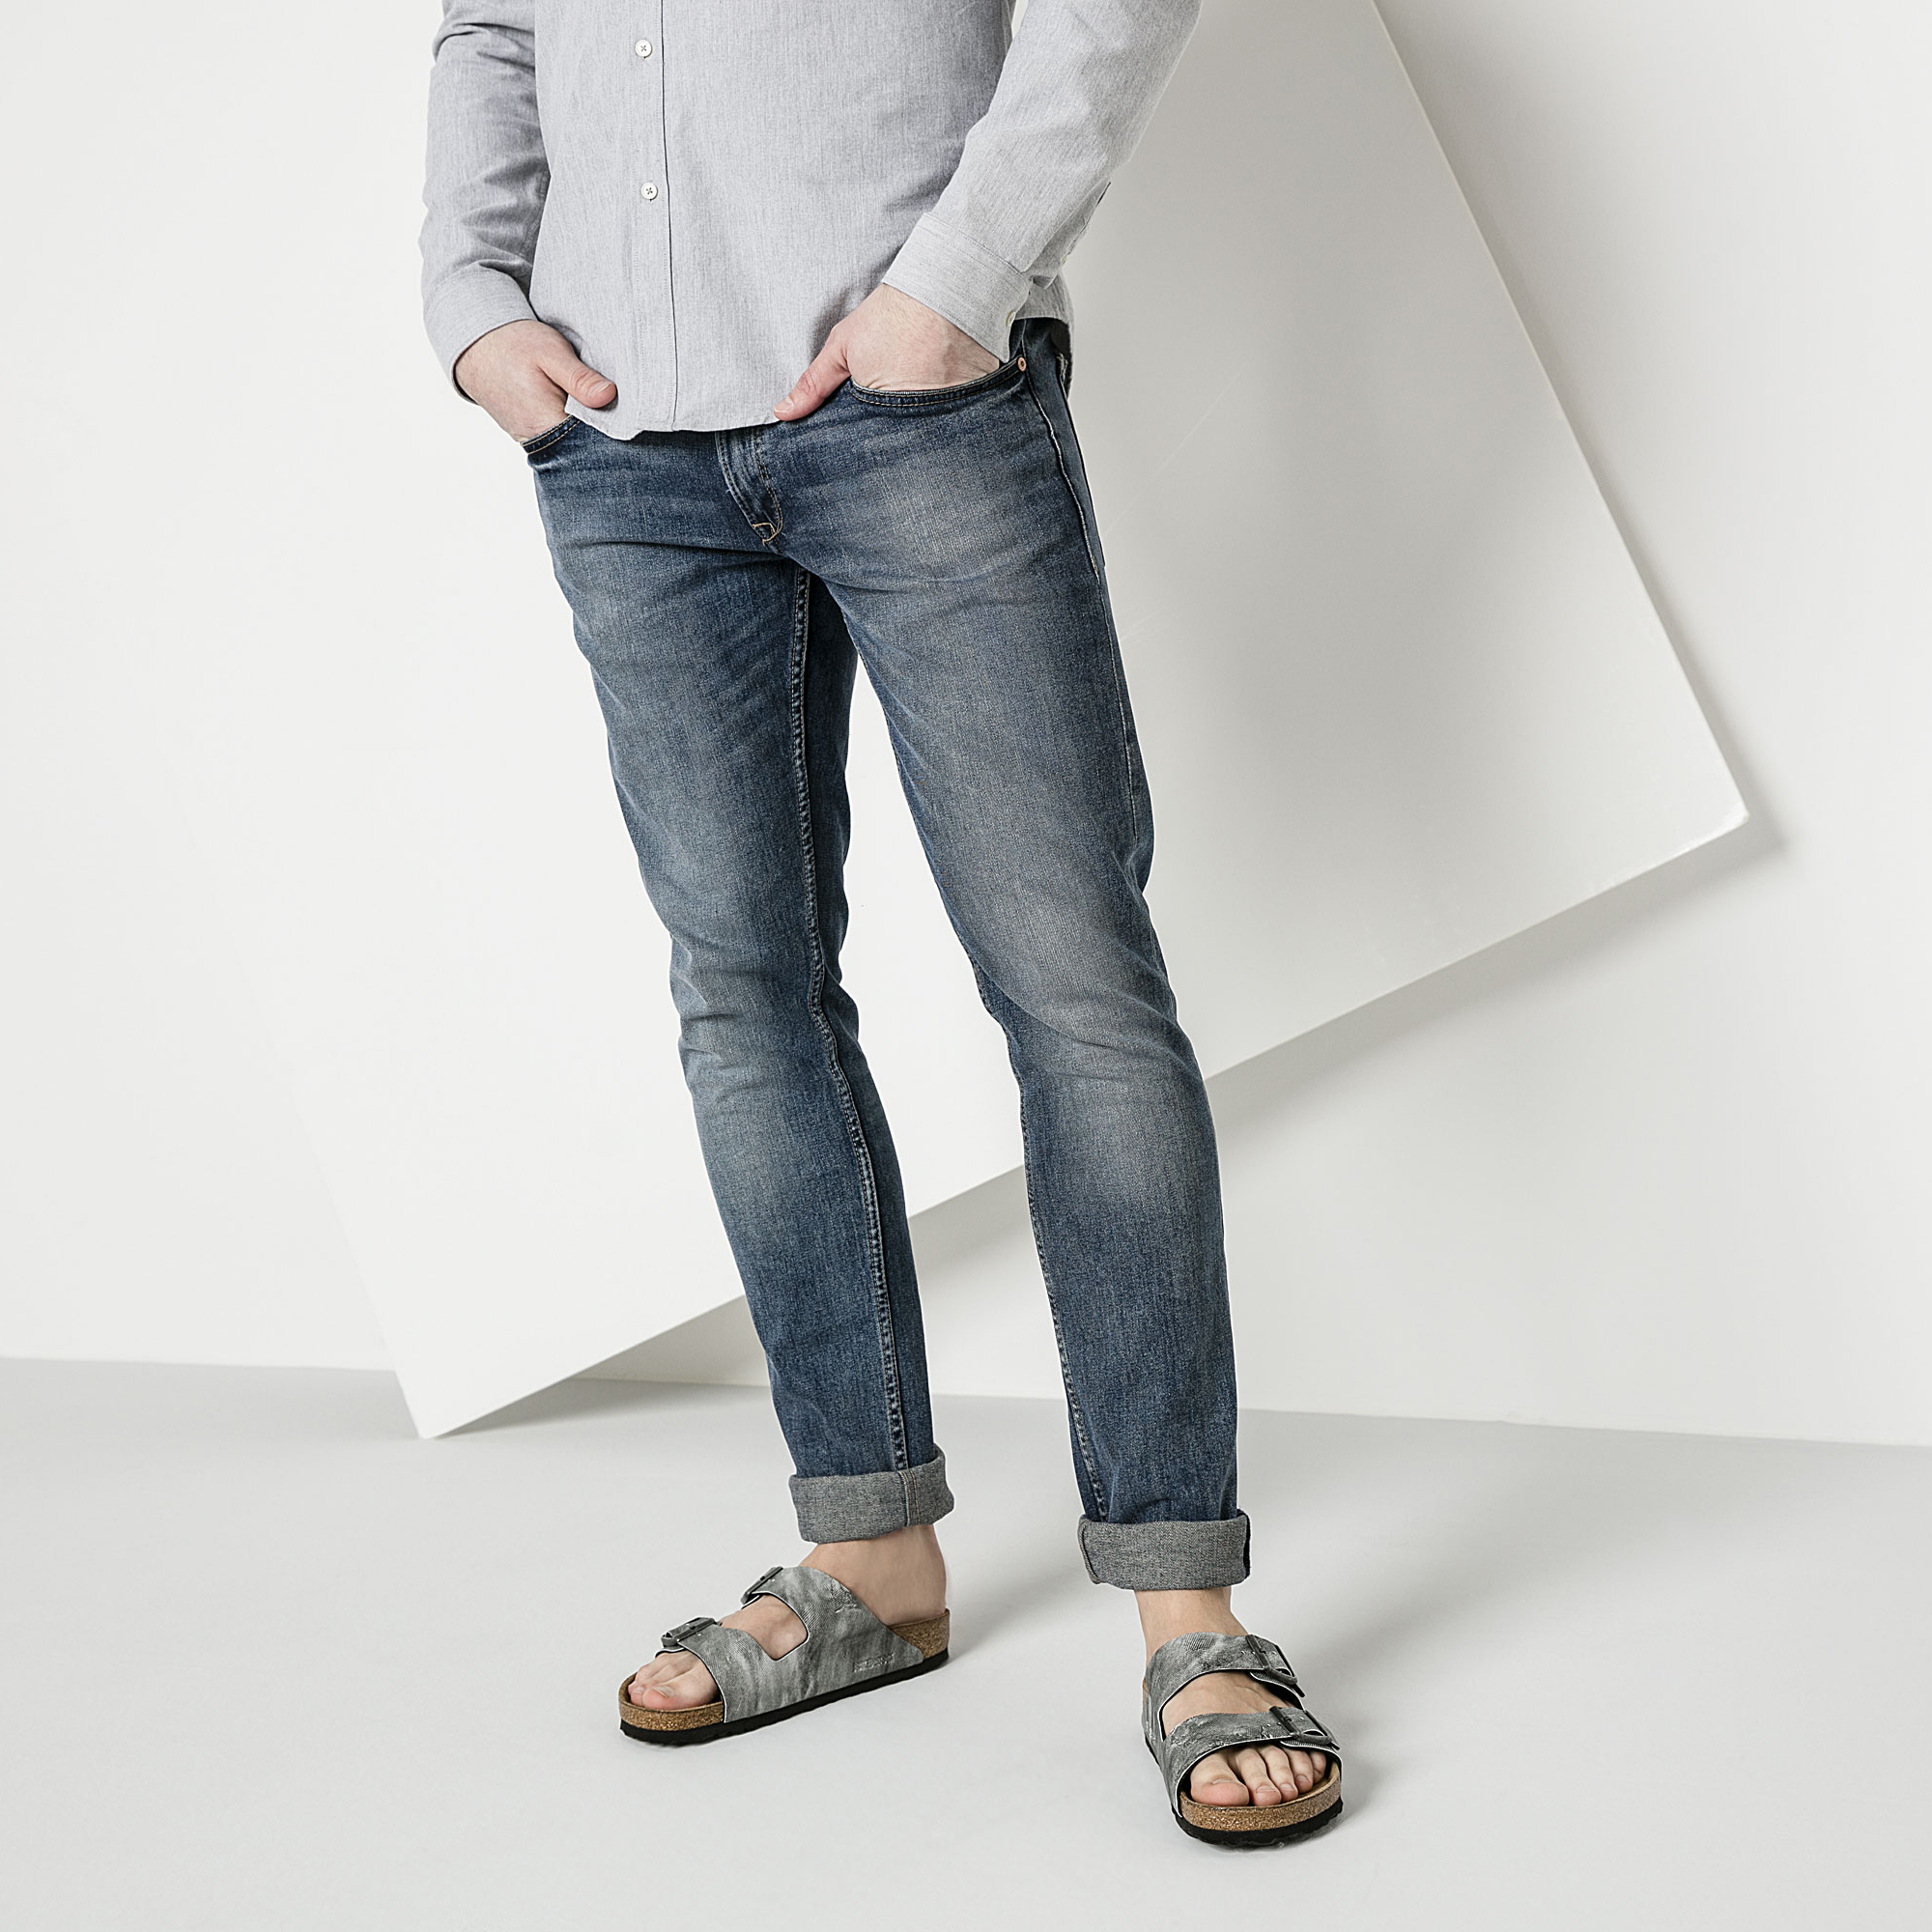 Birkenstock Madrid Birko-Flor Used Jeans Sandals Grey 8ePd7